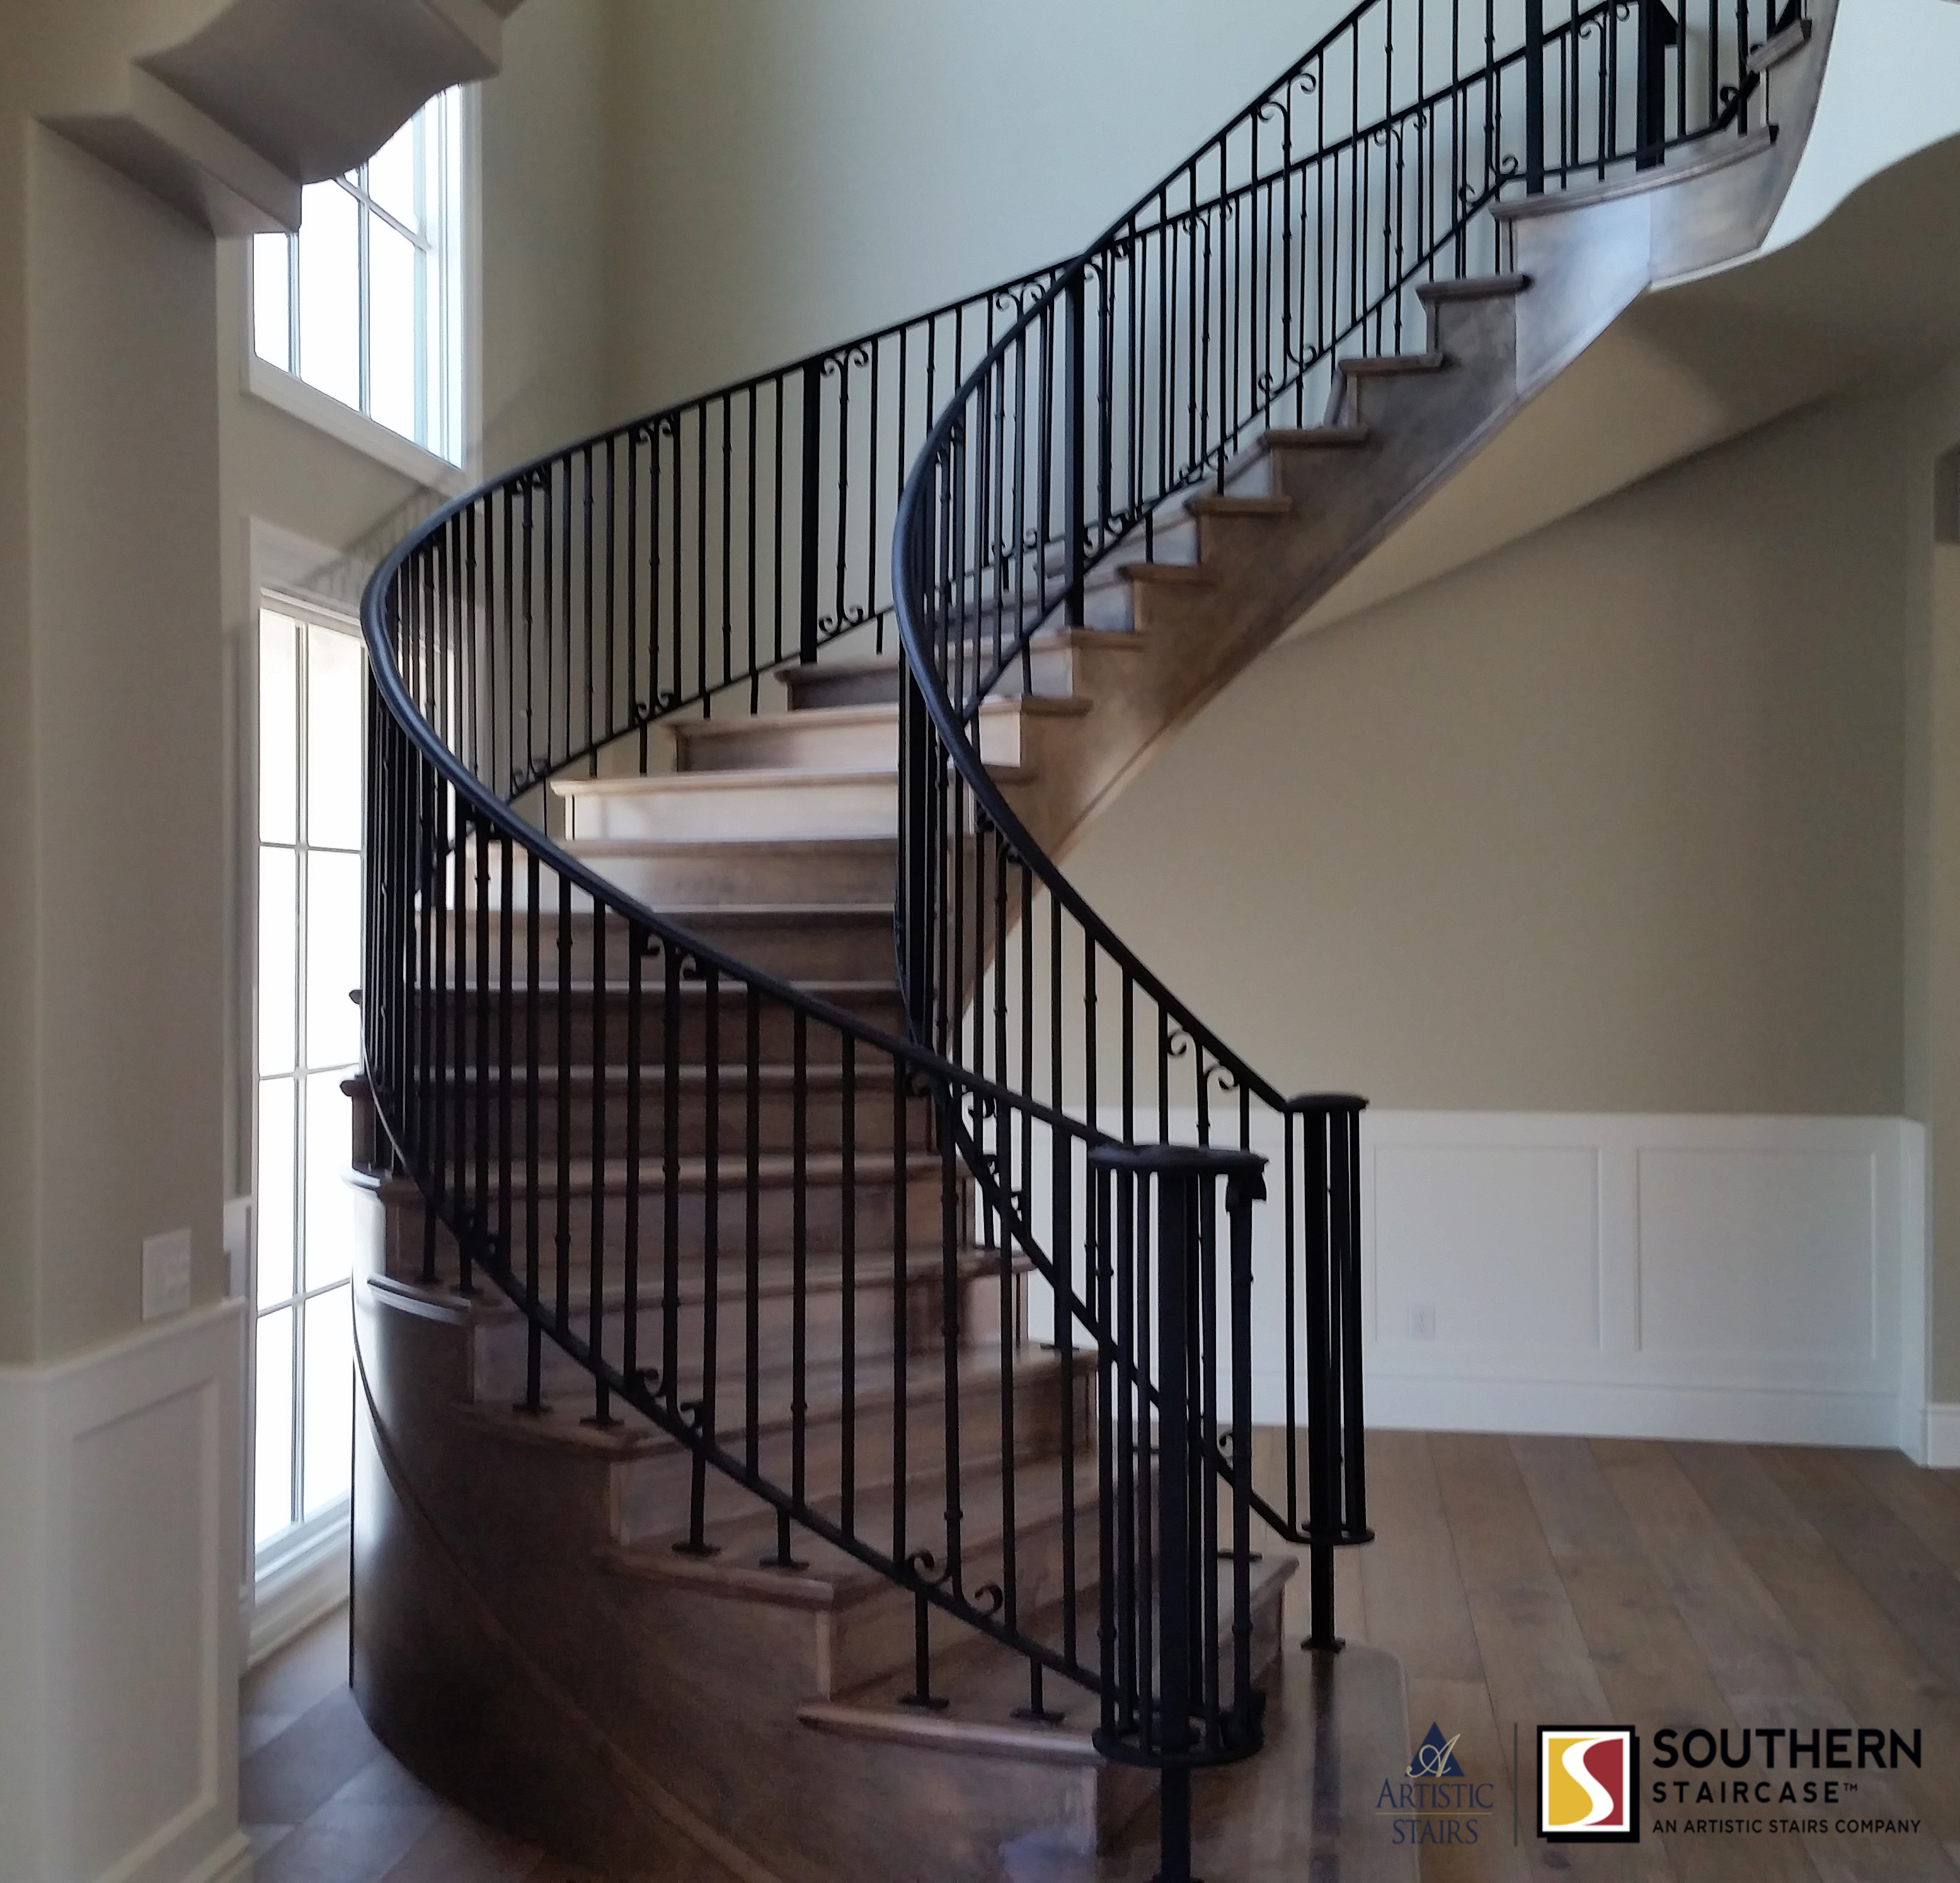 Best Curved Stairs Curved Staircase In 2019 Wood Railings For With Images Curved Staircase Iron 400 x 300